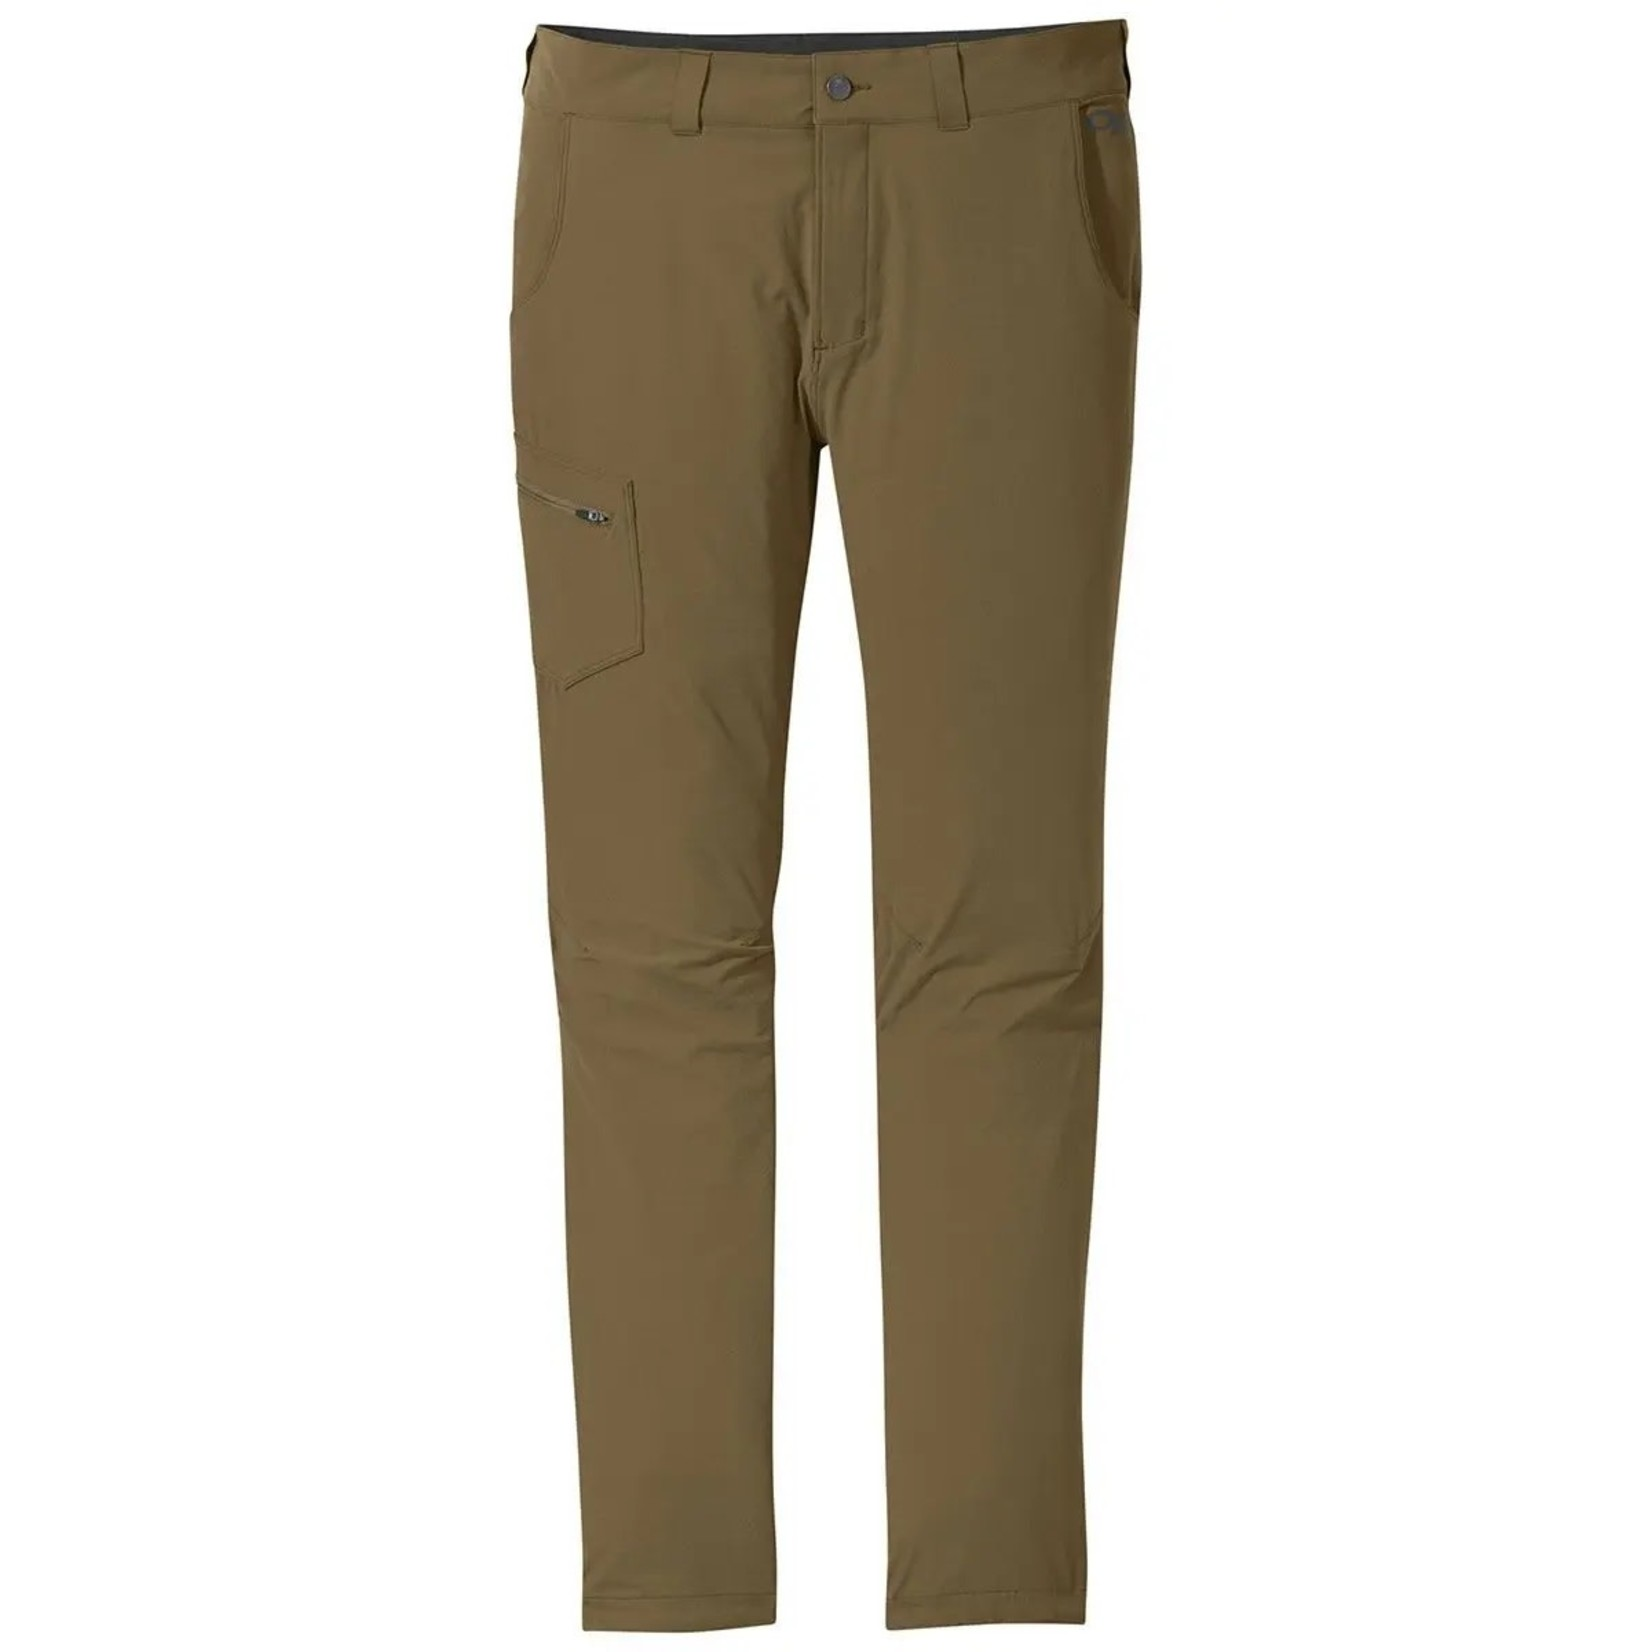 Outdoor Research Pantalon Outdoor Research Ferrosi - Homme